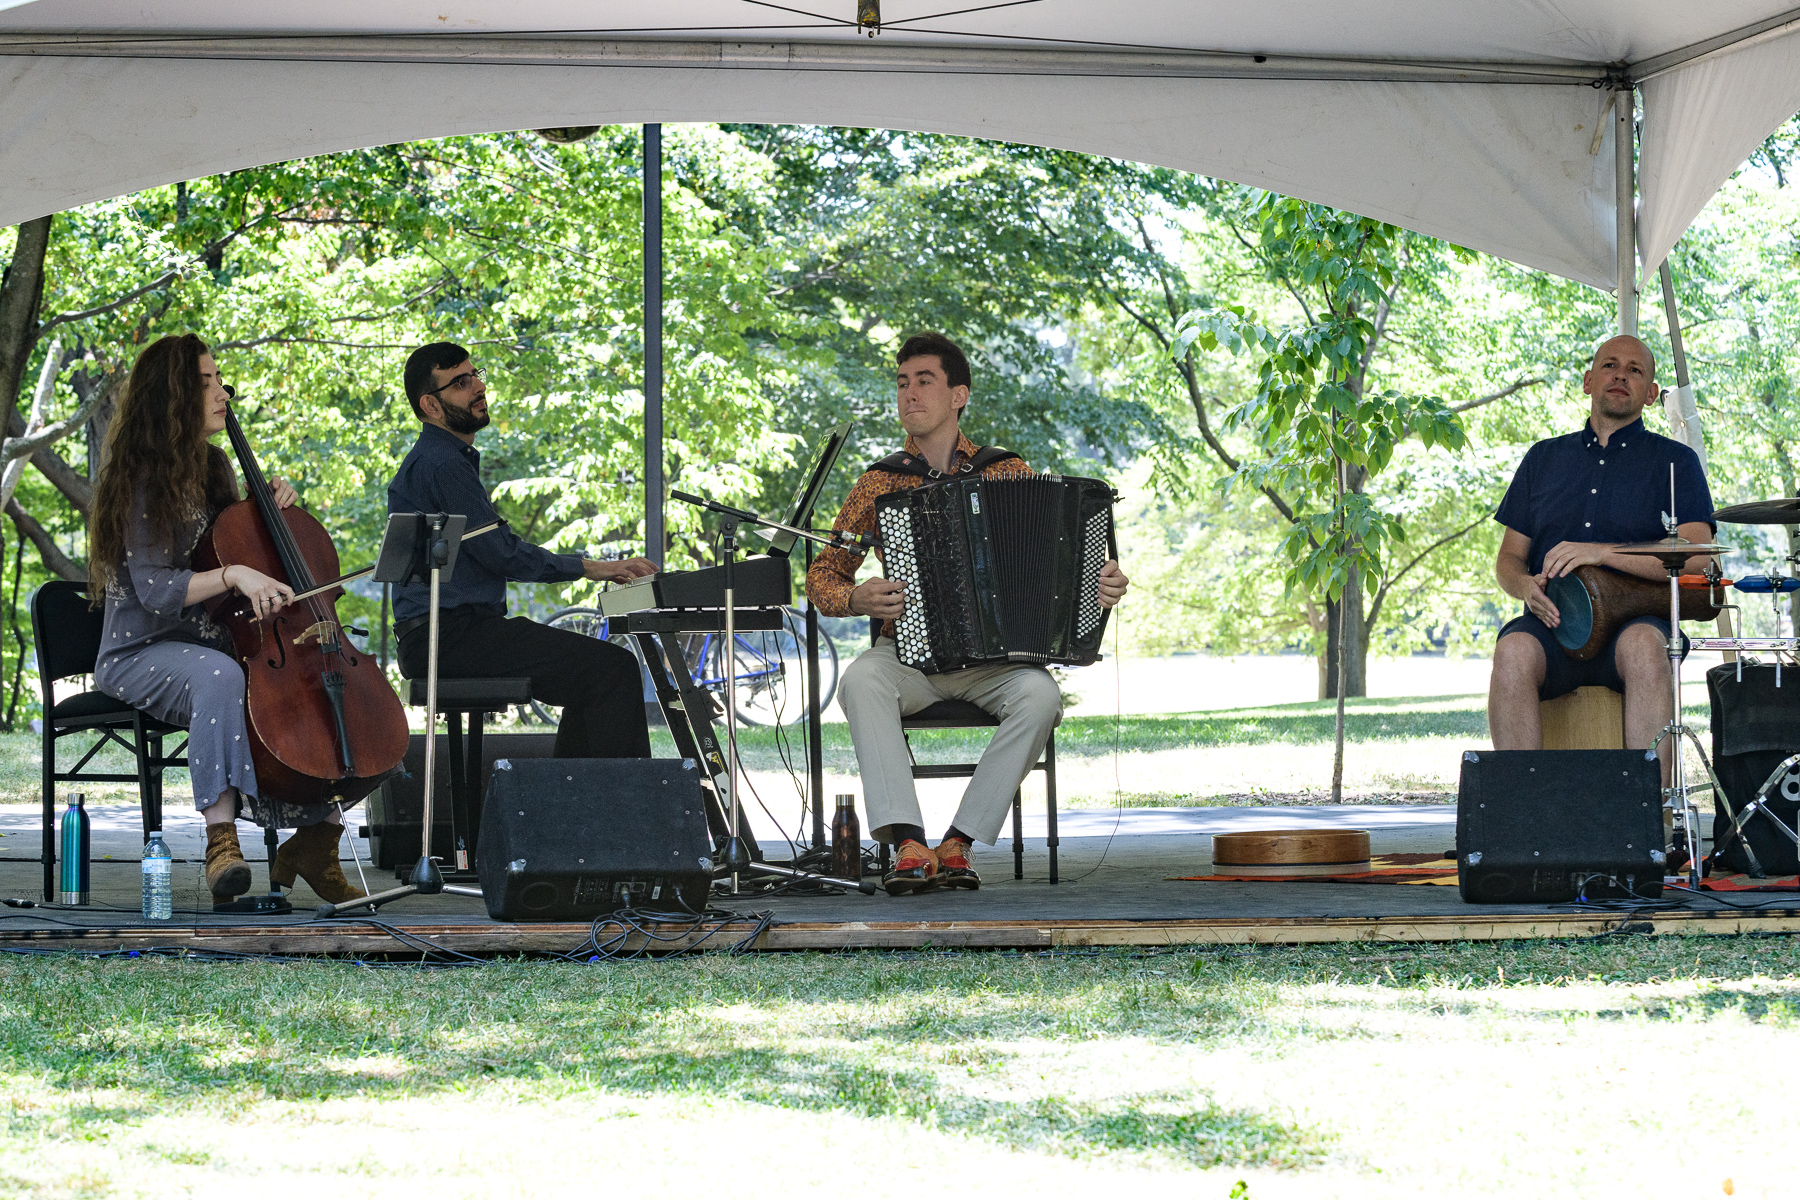 Chamberfest at Rideau Hall   The Governor General of Canada